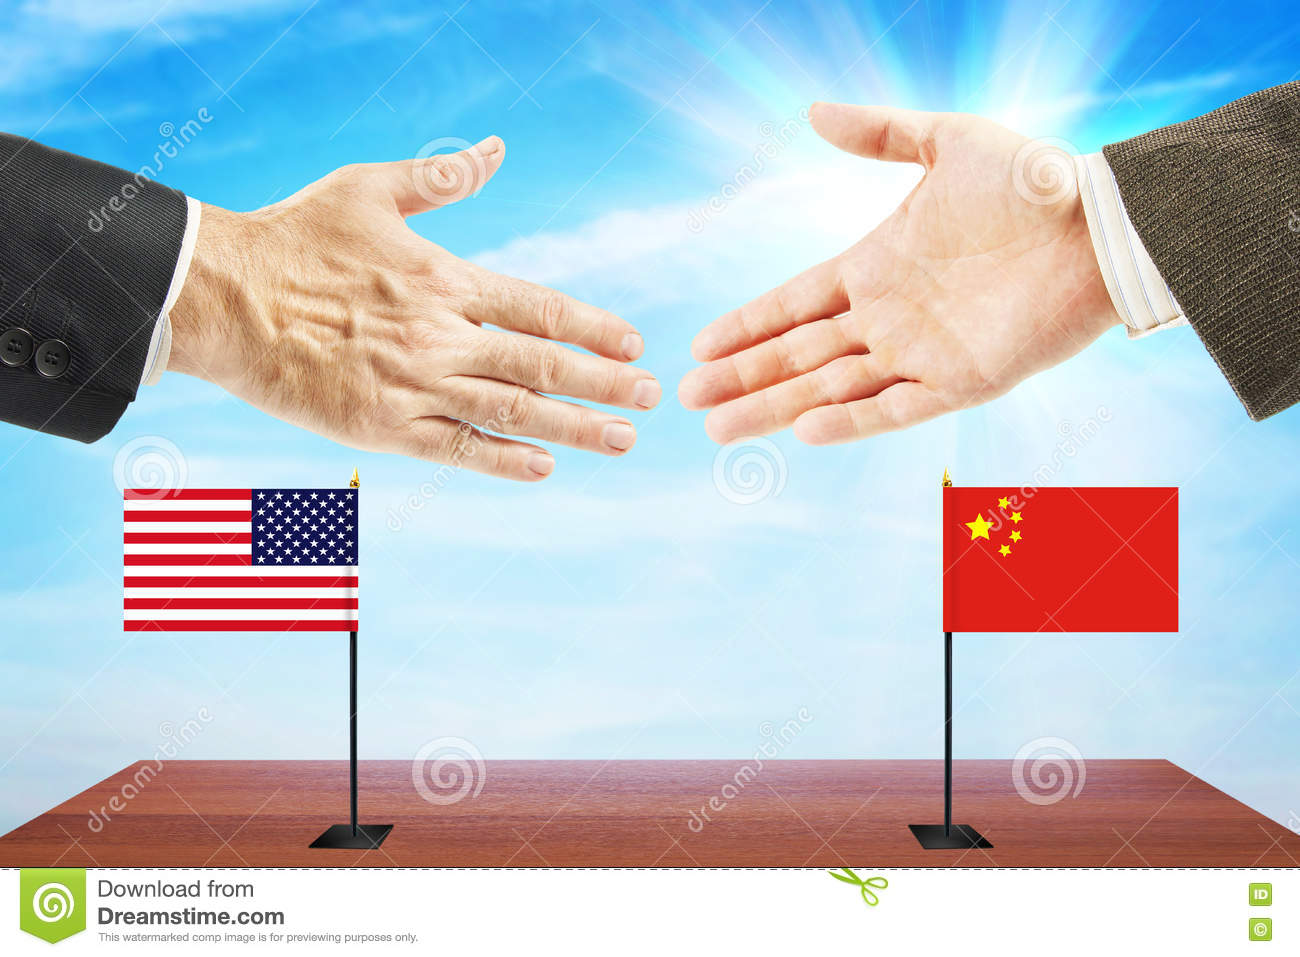 trade relationship between the united states and china